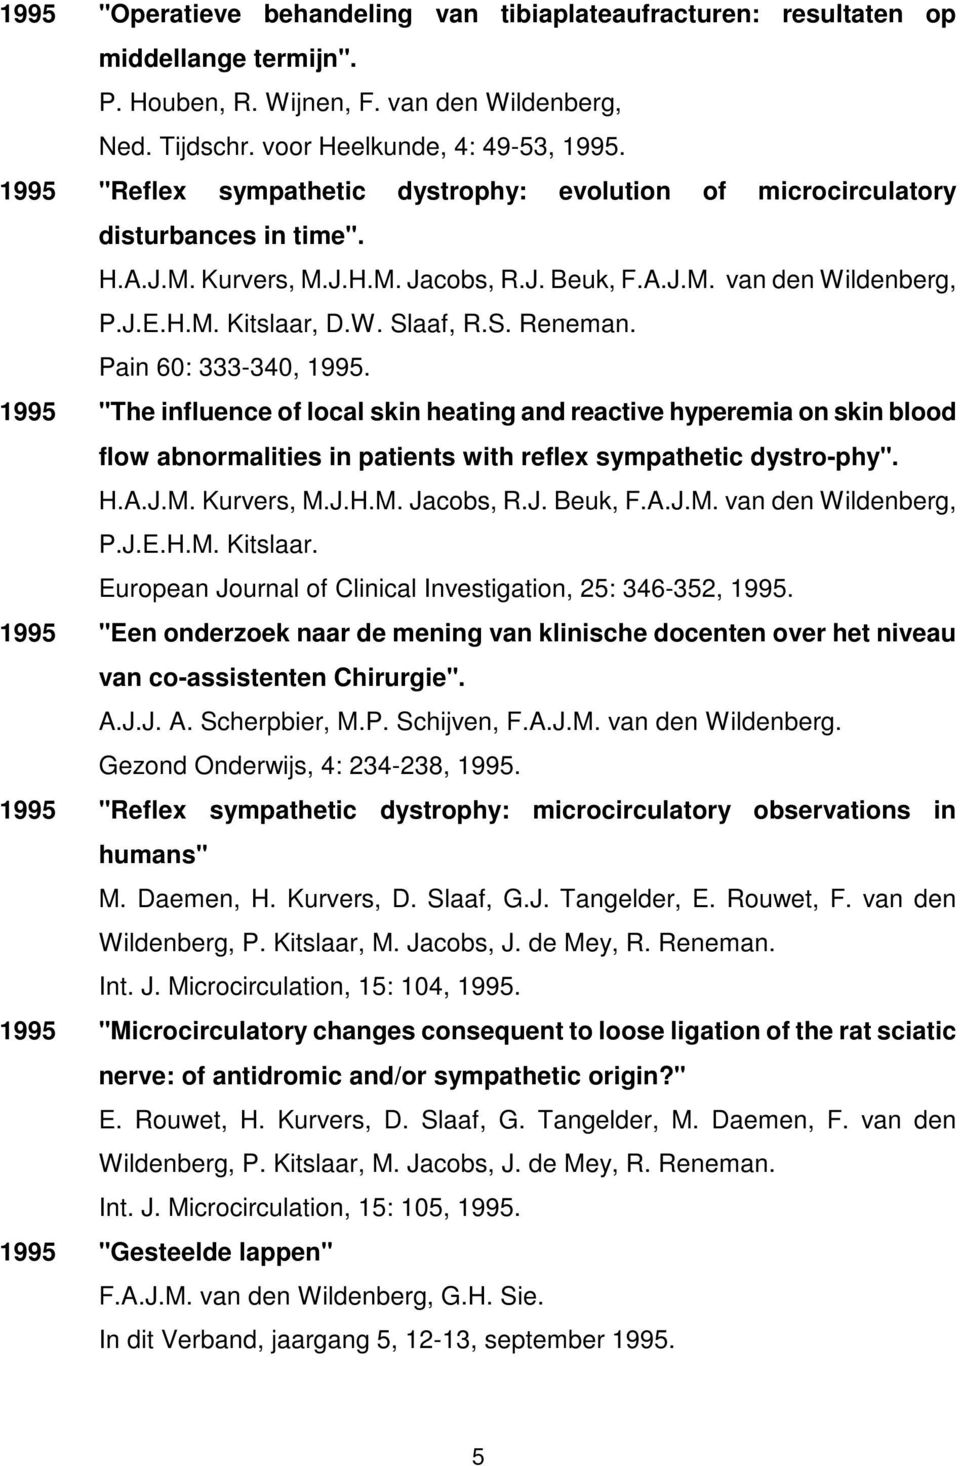 "S. Reneman. Pain 60: 333-340, 1995. 1995 ""The influence of local skin heating and reactive hyperemia on skin blood flow abnormalities in patients with reflex sympathetic dystro-phy"". H.A.J.M."